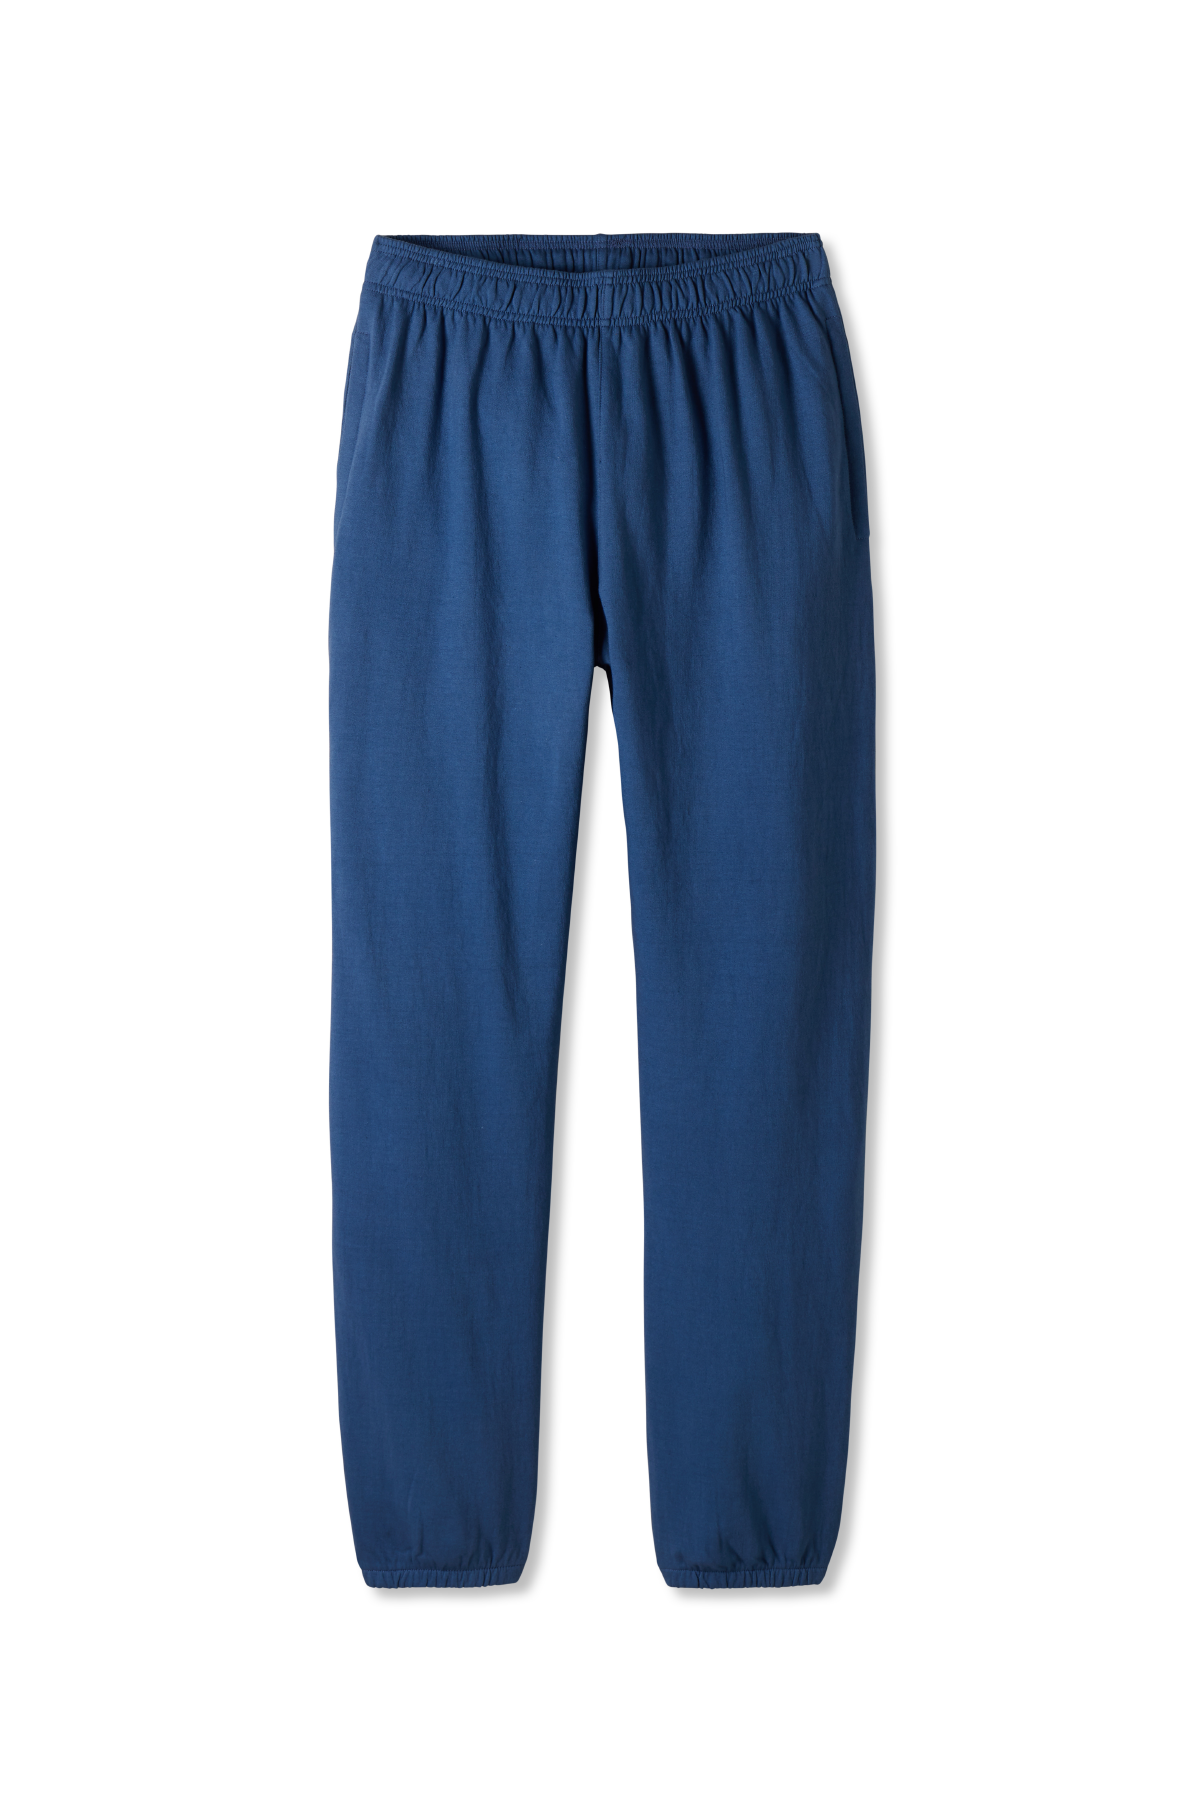 Men's Sweatpants in River